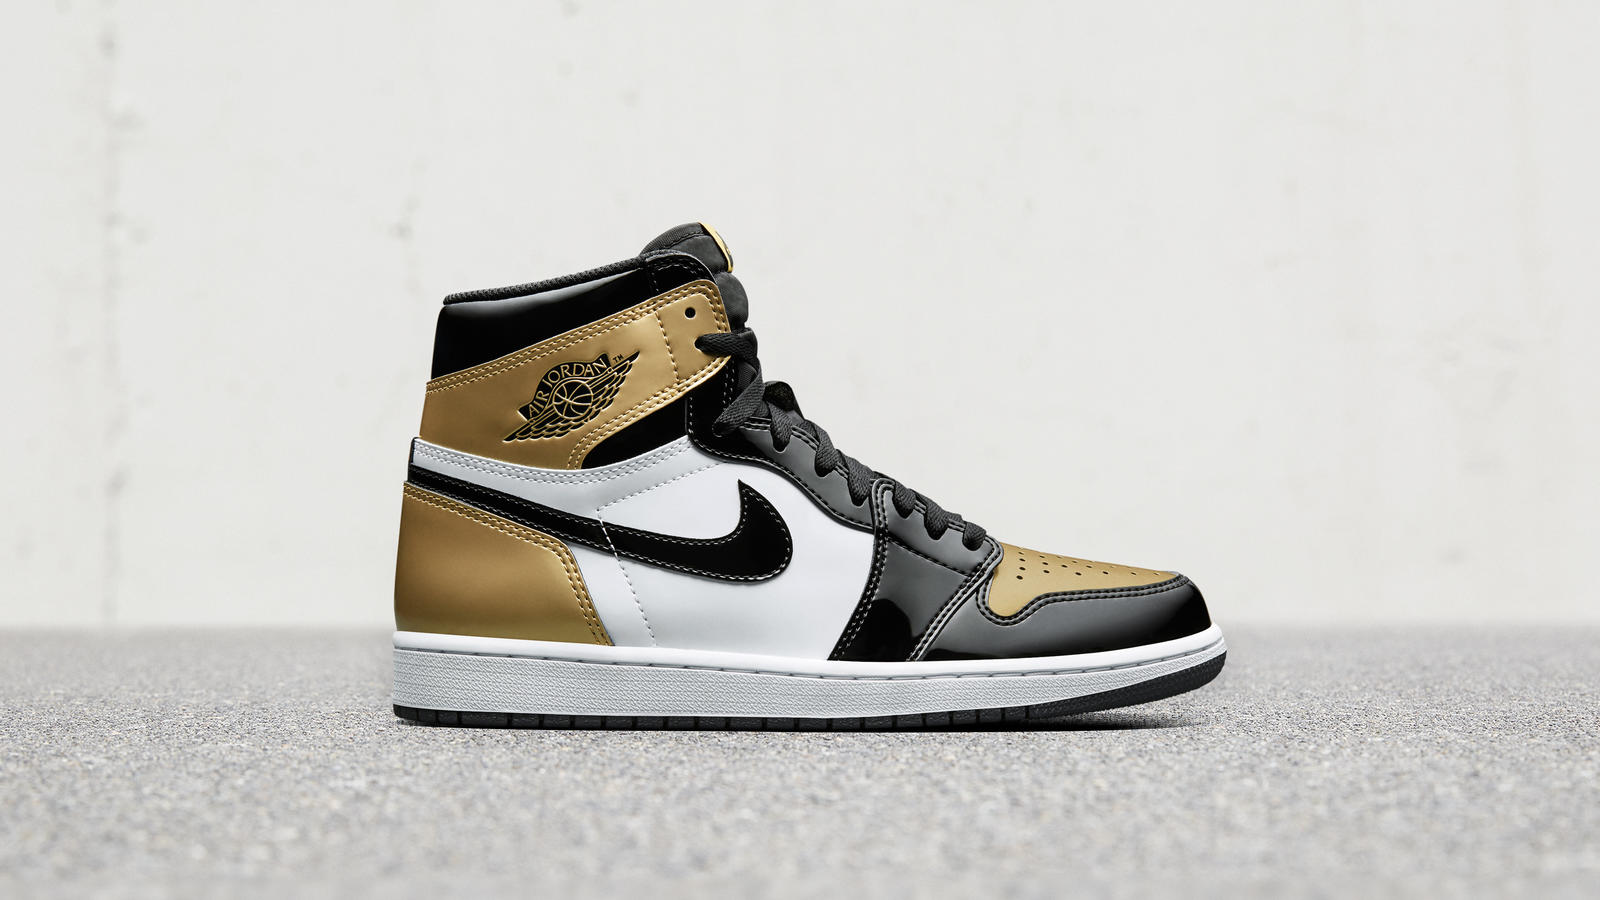 021ba8a33024 Air Jordan 1 Top 3 Gold - Nike News